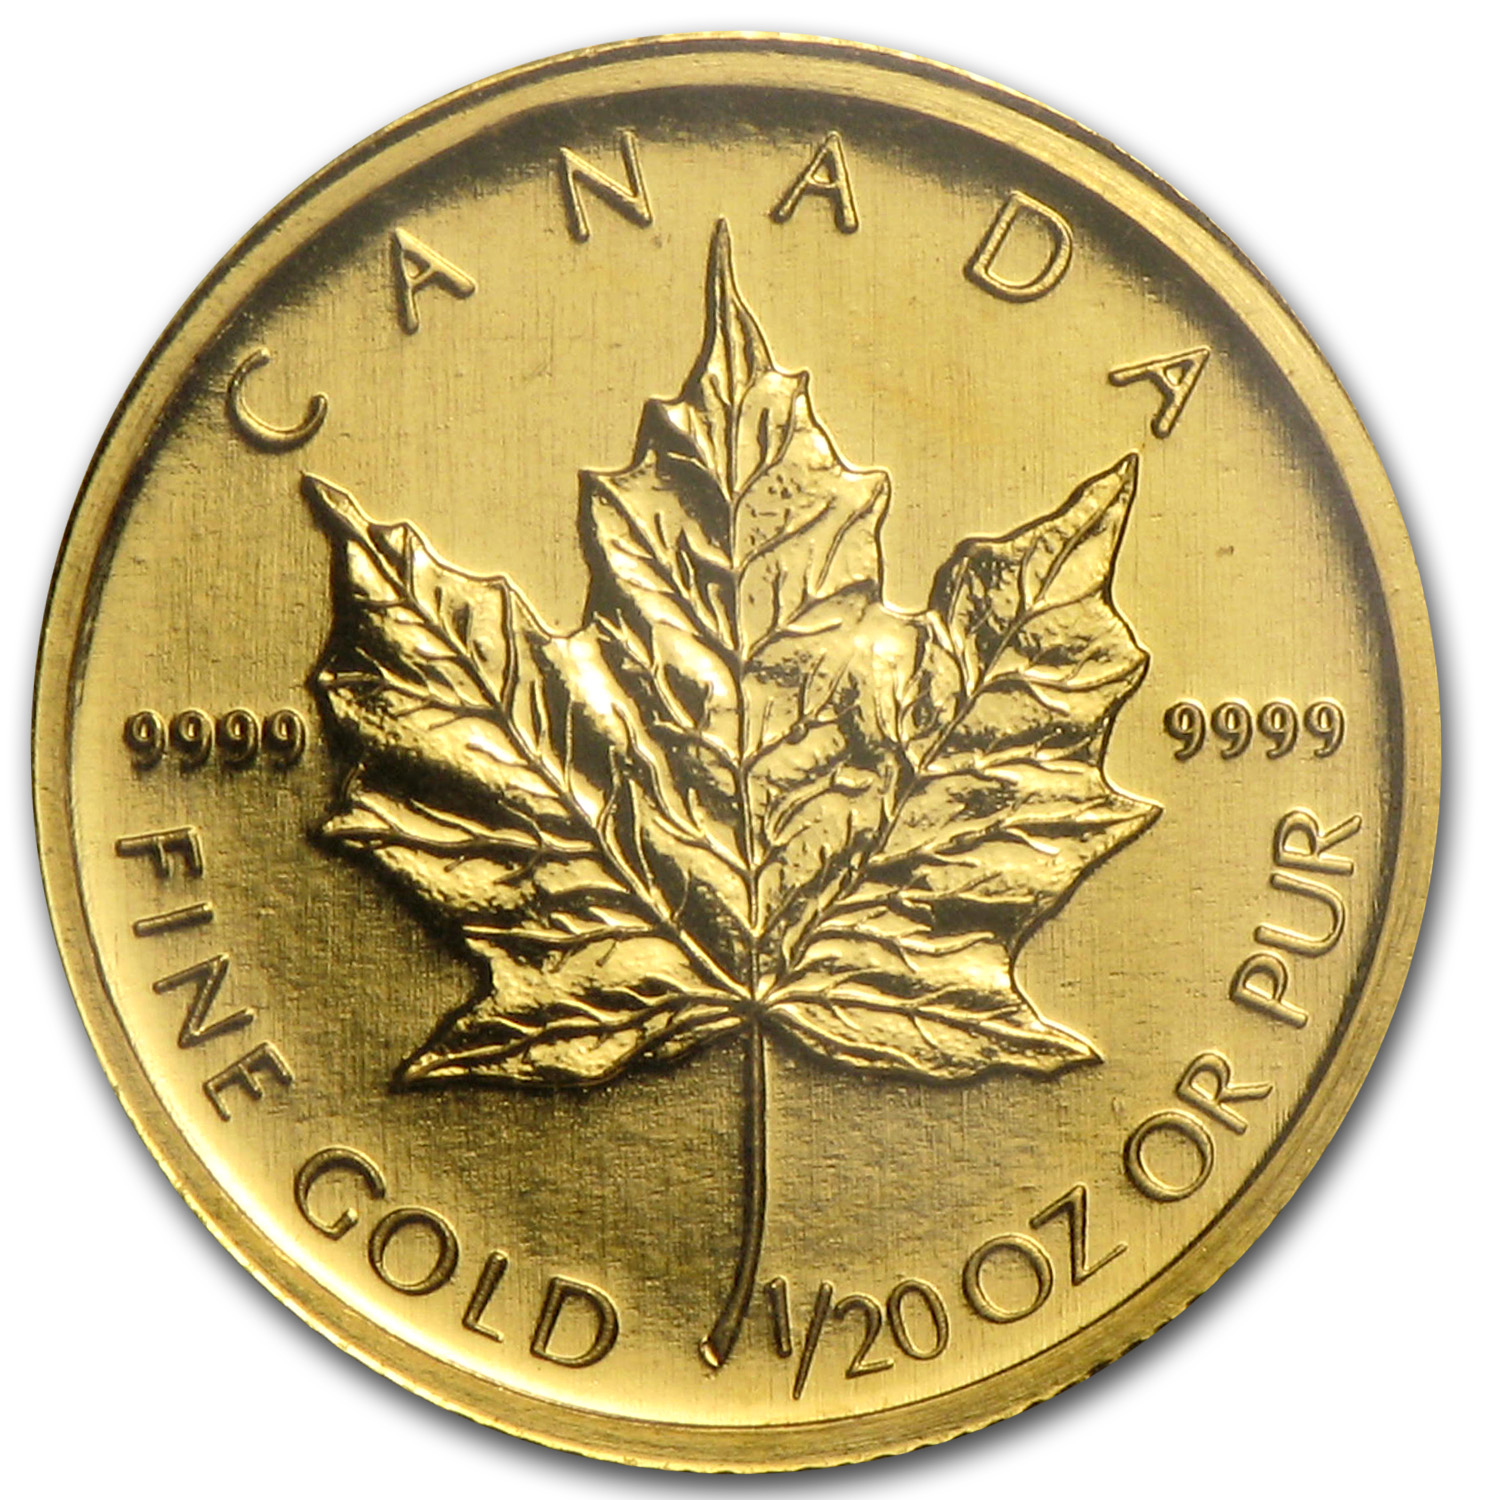 2009 Canada 1/20 oz Gold Maple Leaf BU